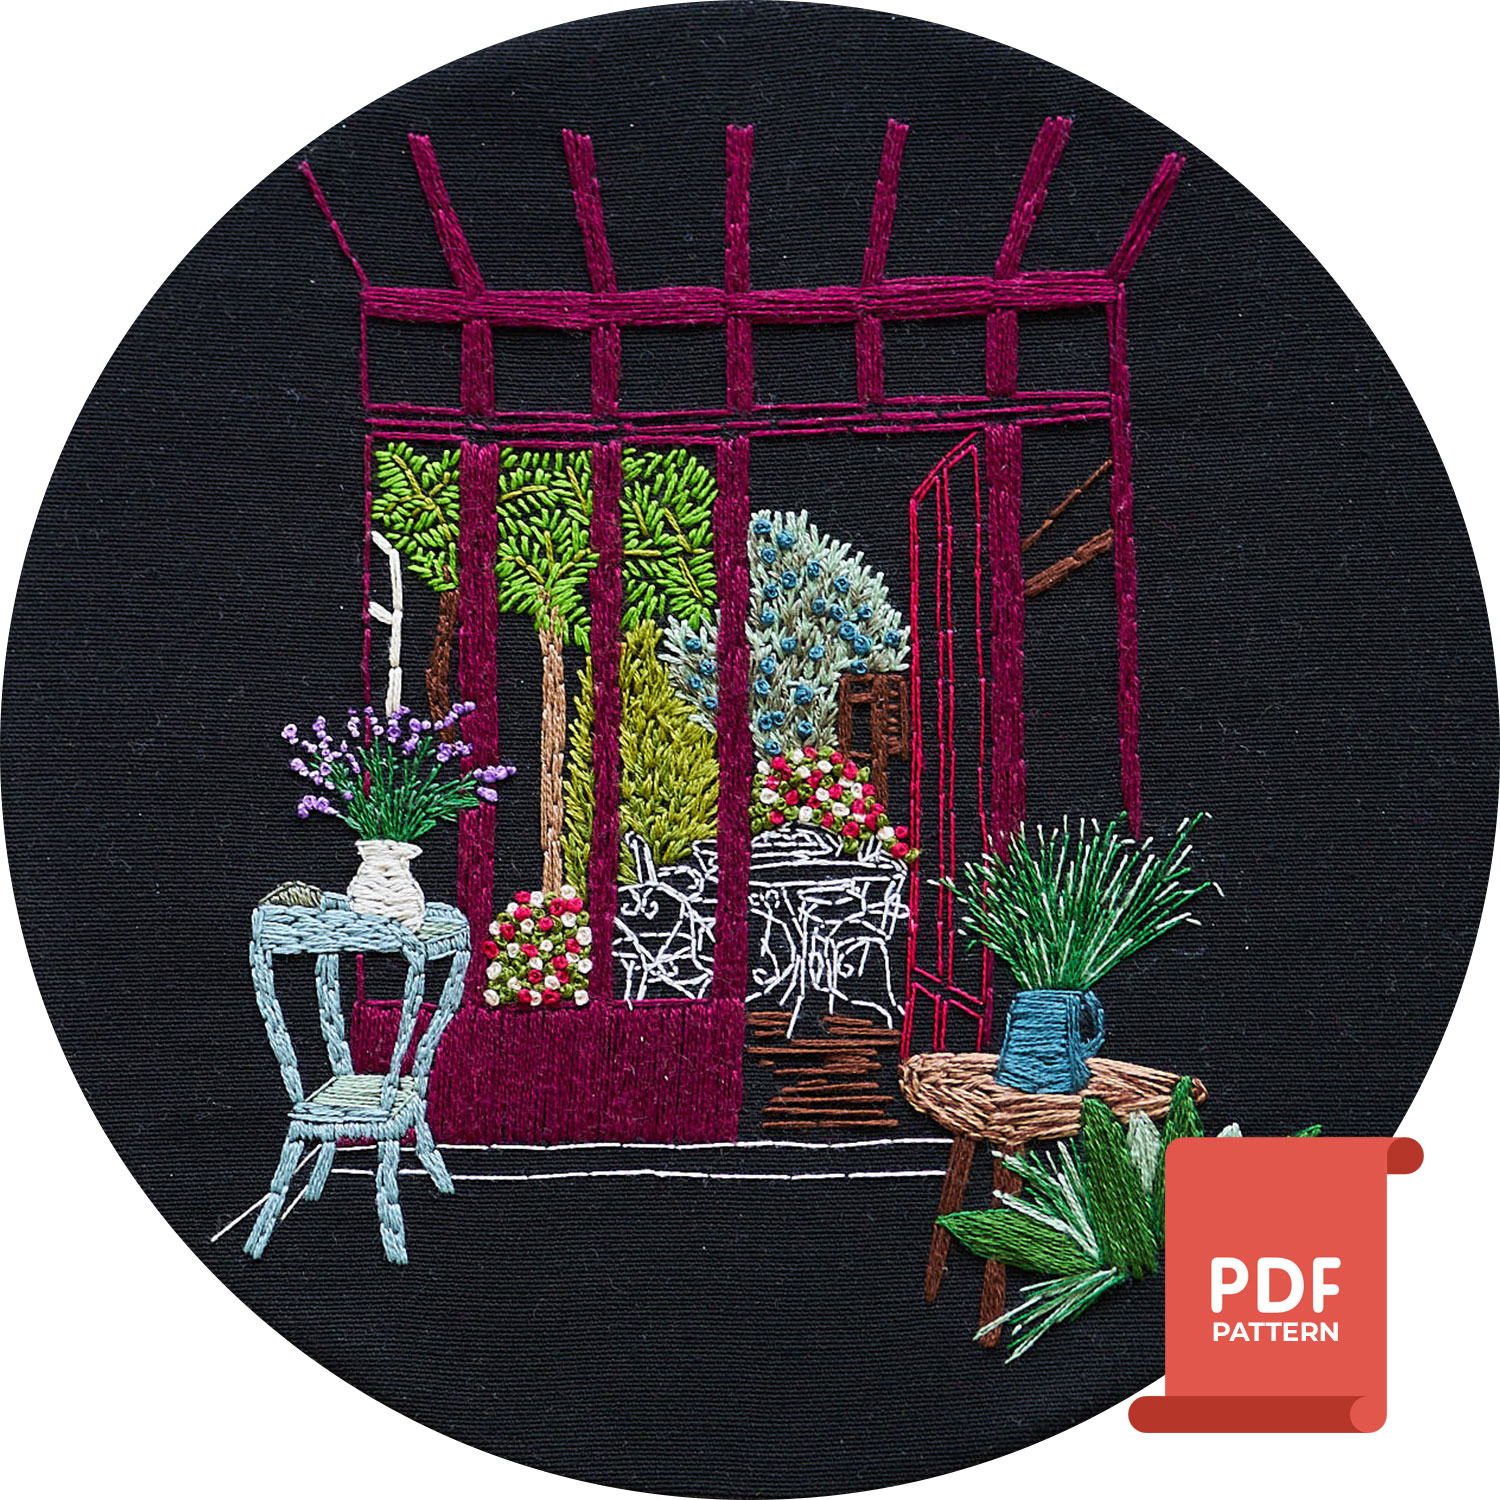 Embroidery design on black fabric